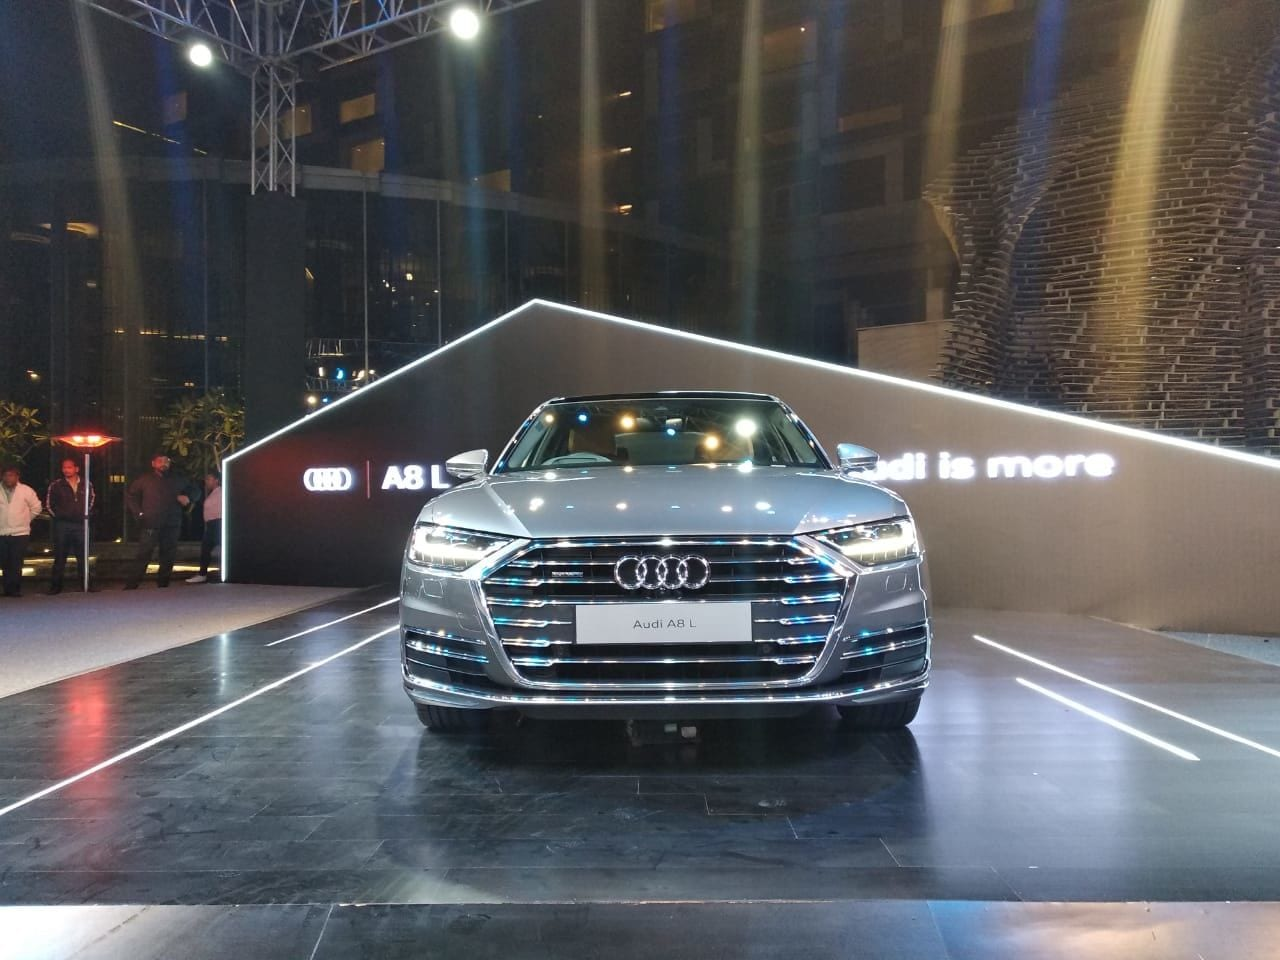 The Audi A8 L is equipped with a 10Ah lithium ion battery that helps the car cruise for up to 40 seconds with the ignition off - at anywhere between 55 kmph and 160 kmph.